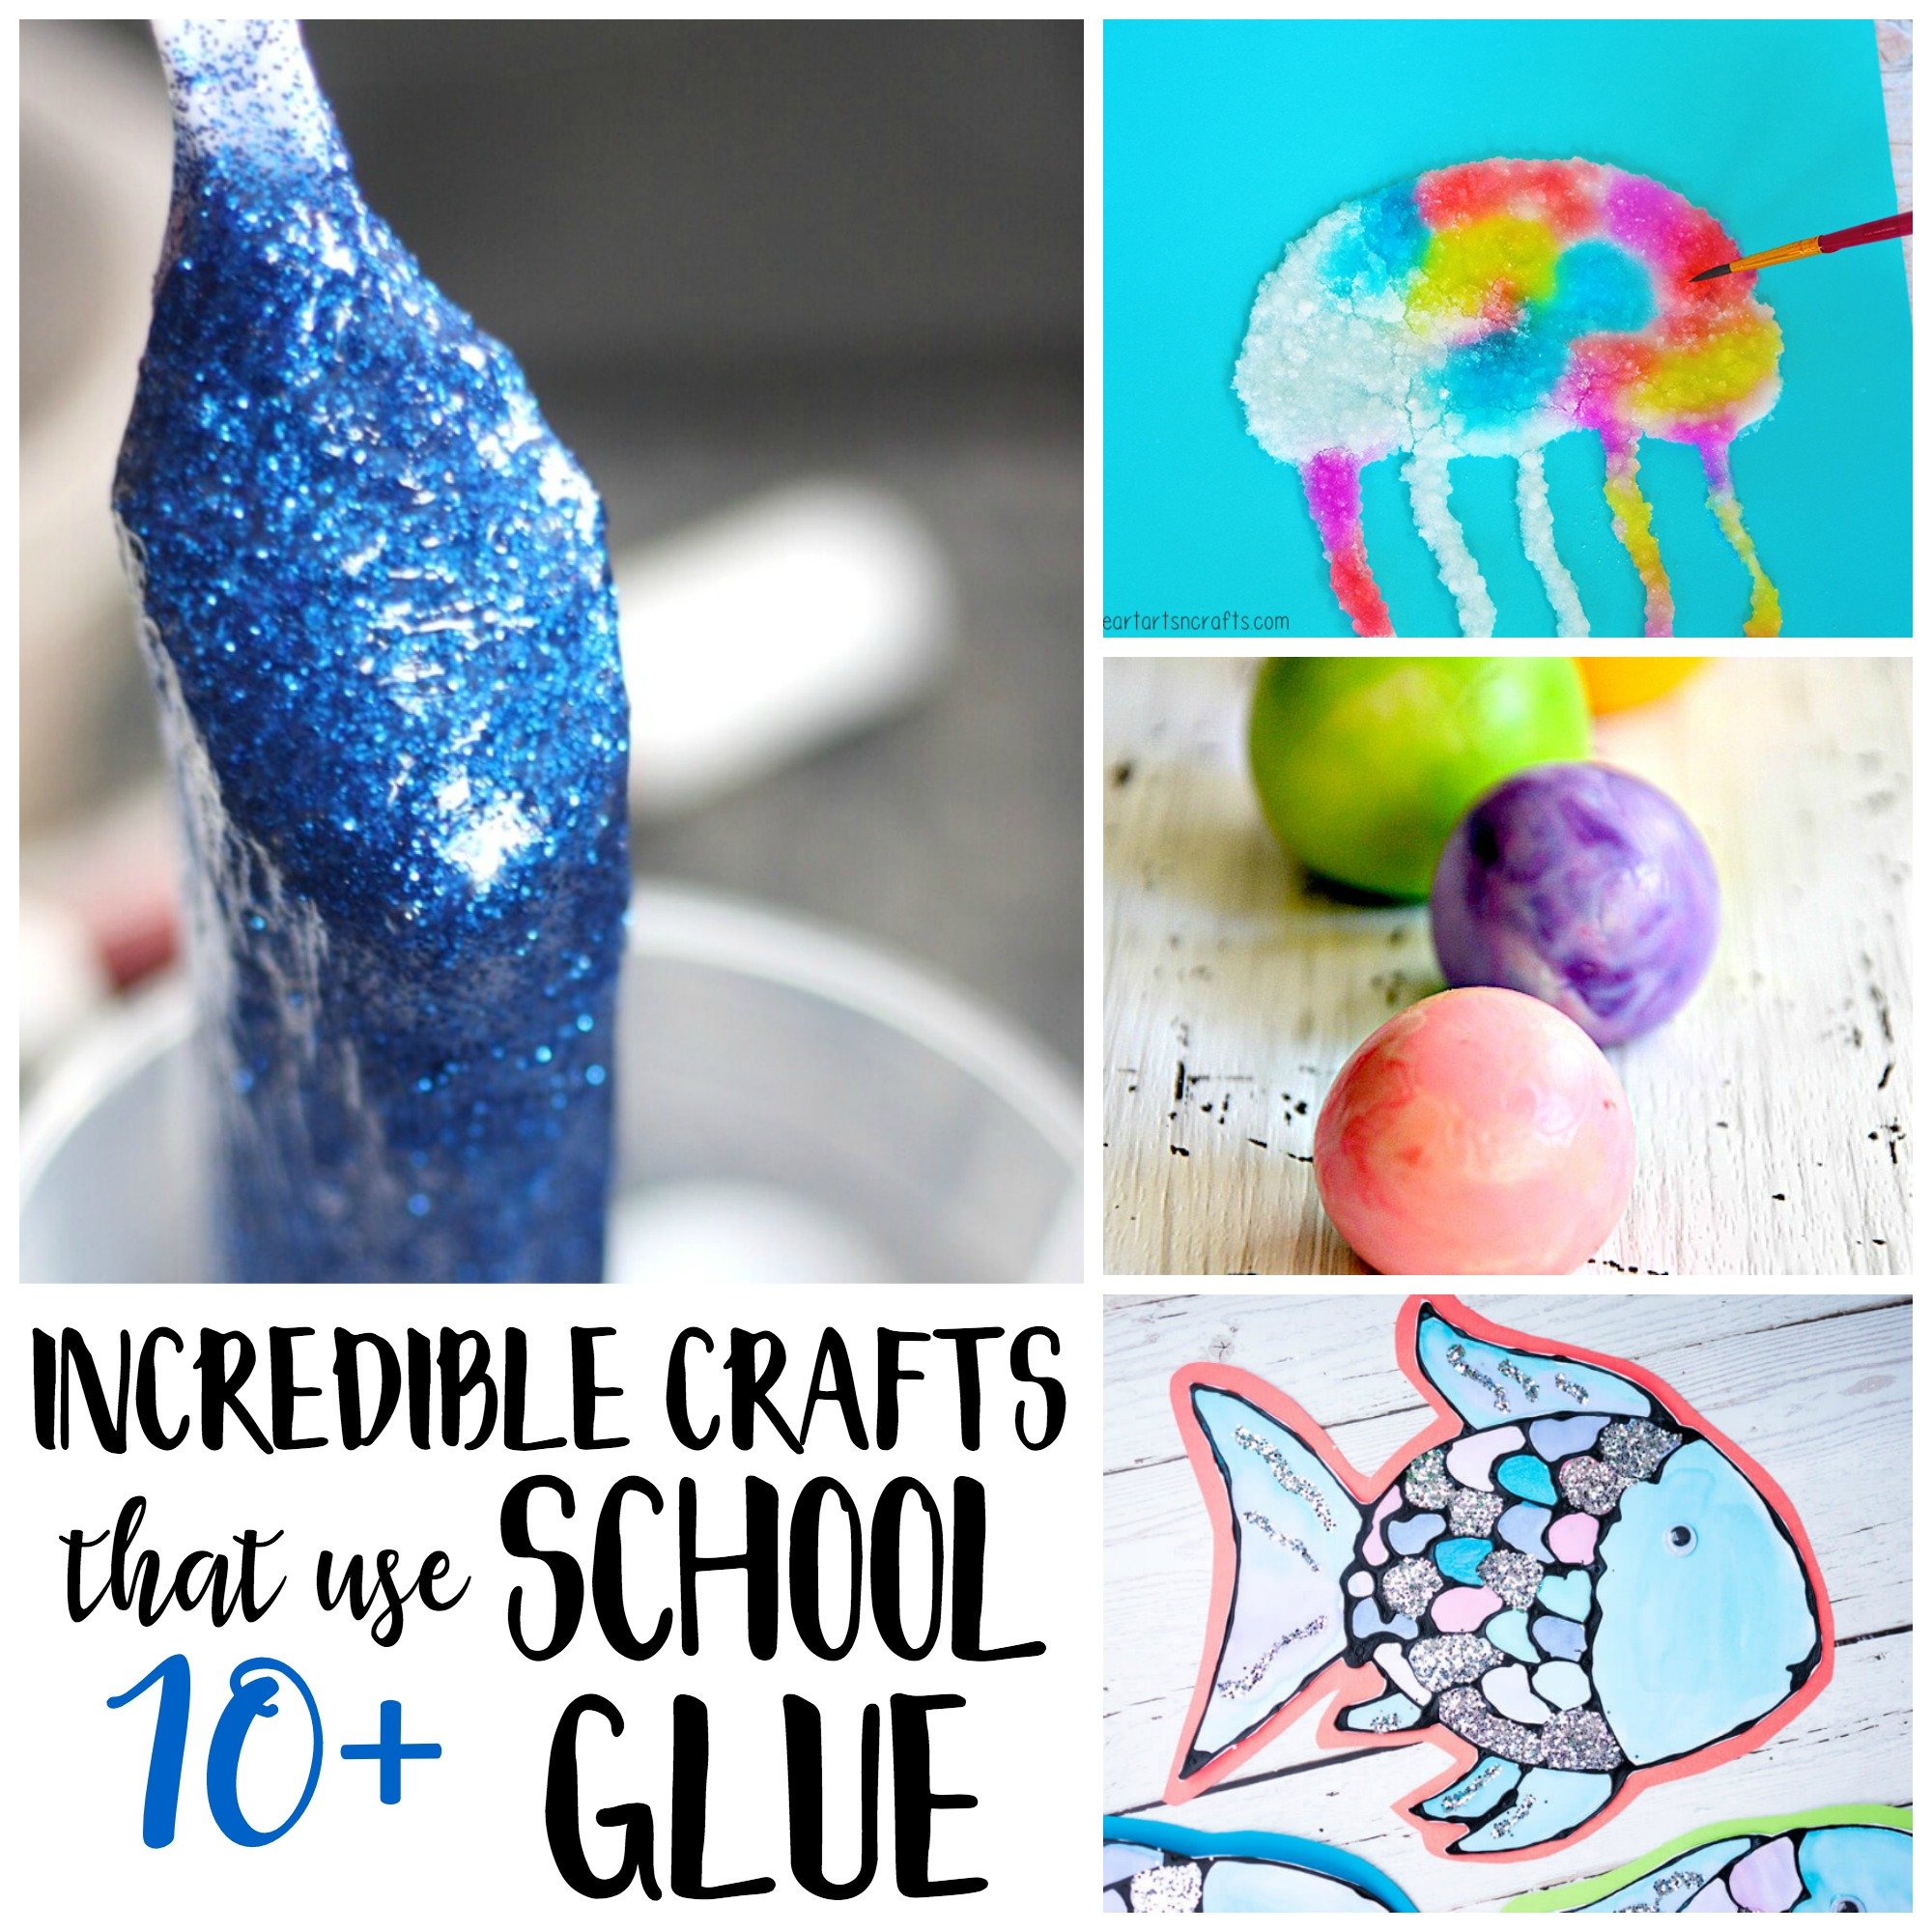 Incredible crafts using white school glue for Best glue for crafts